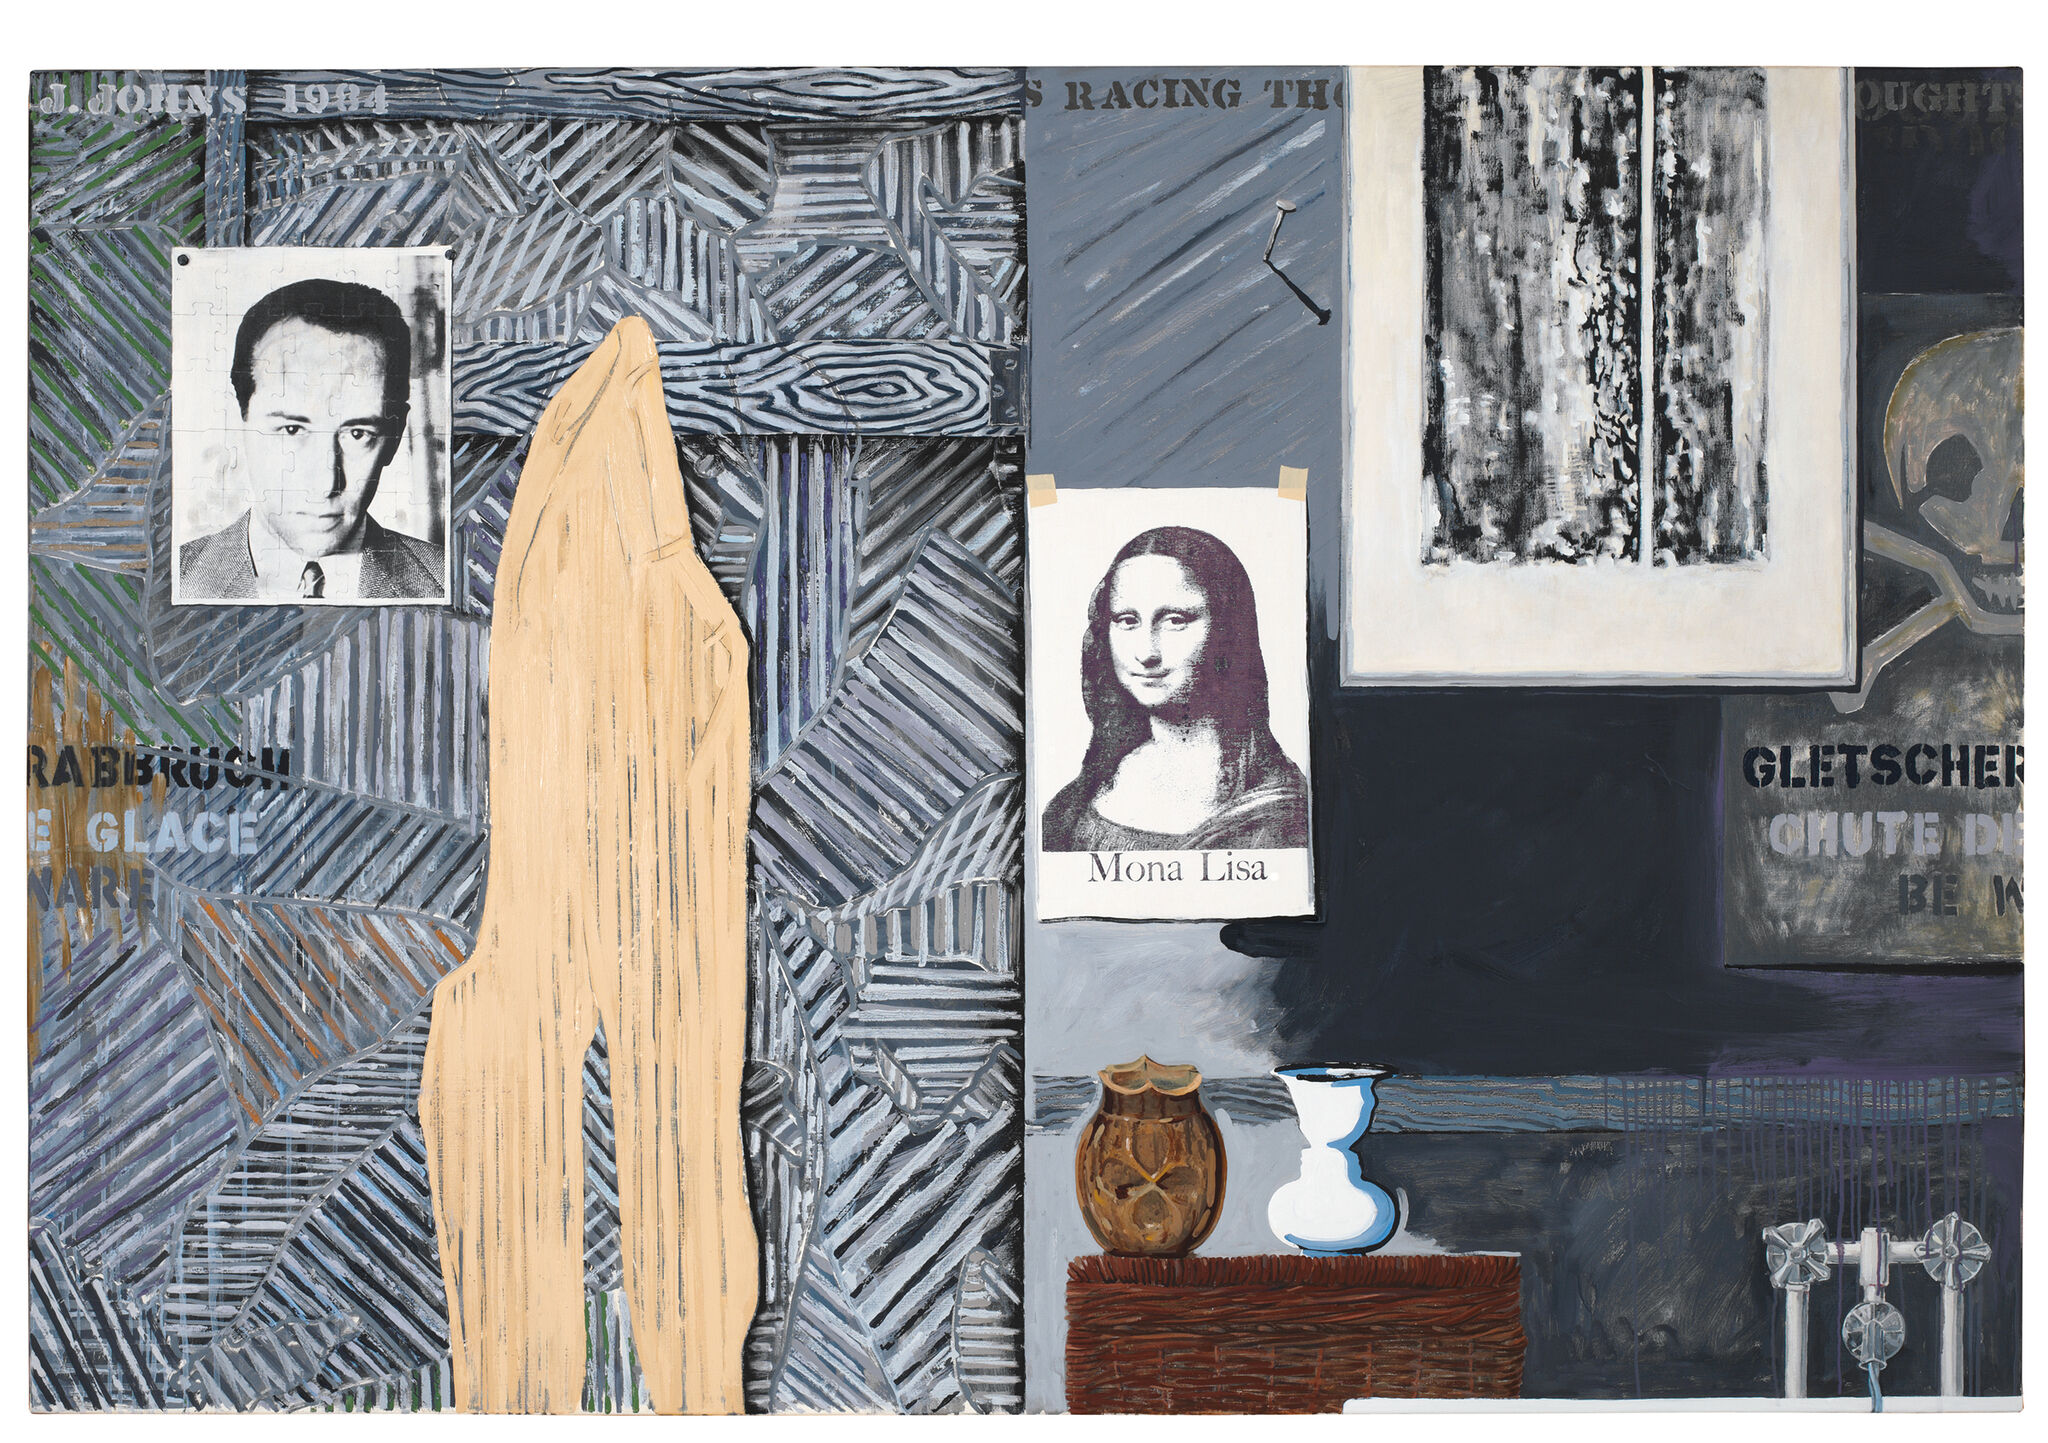 Abstract view of a gray, black, and white interior, with photographs artwork reproductions, and artworks on the walls; two vases; a faucet; and words embedded in the patterned background.